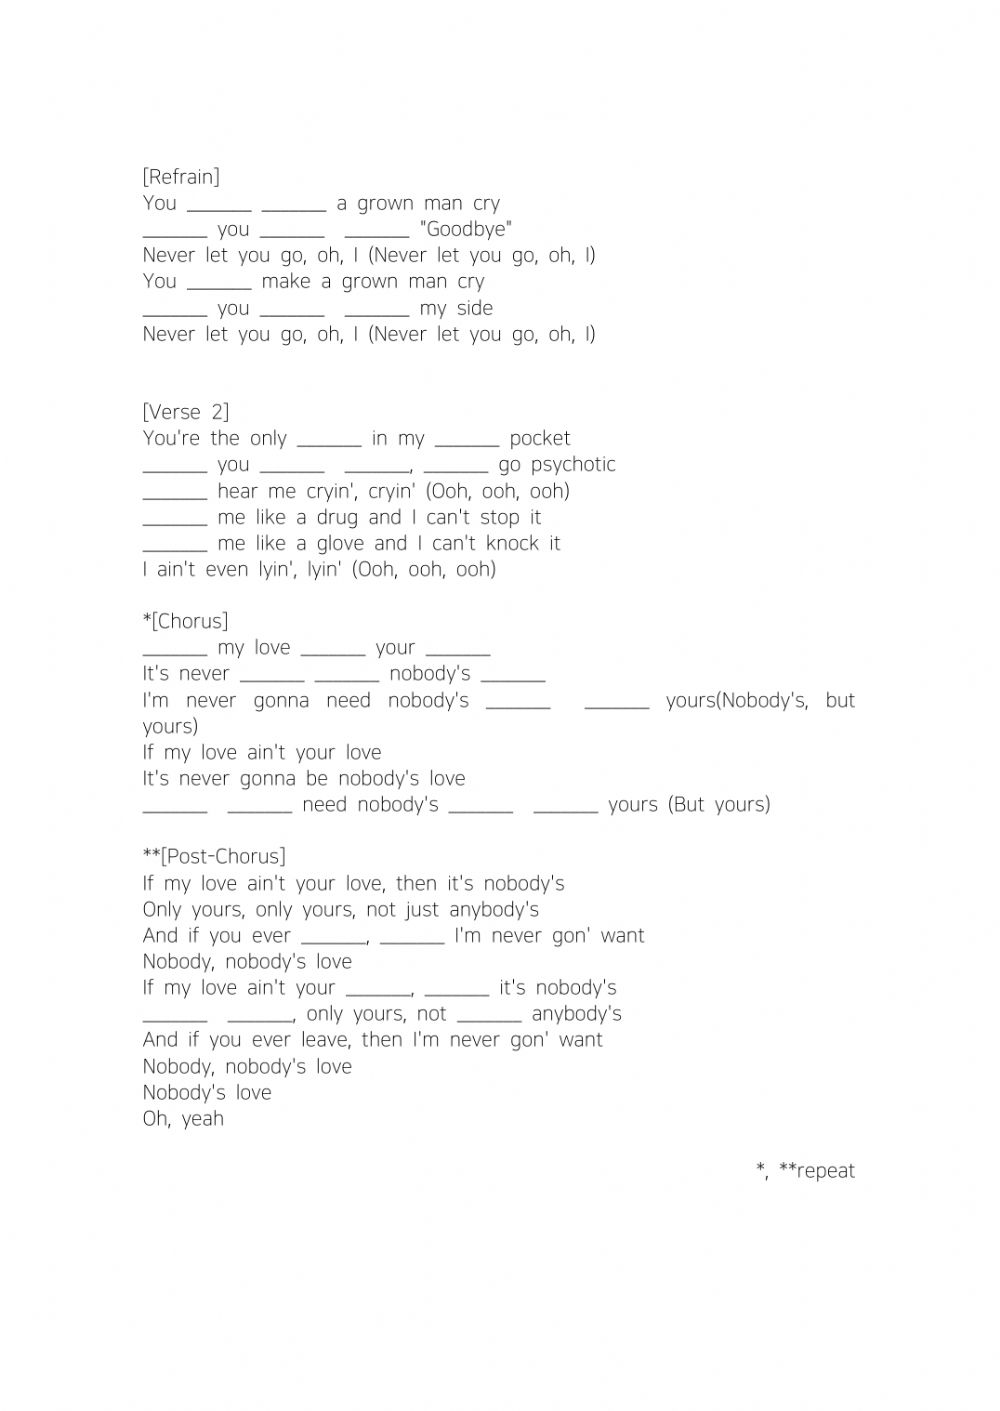 Nobody S Love Lyrics Maroon5 Worksheet She took control, pushed me on the wall took me in the stall told me give me what i want i just cant nobody's in love lyrics. nobody s love lyrics maroon5 worksheet